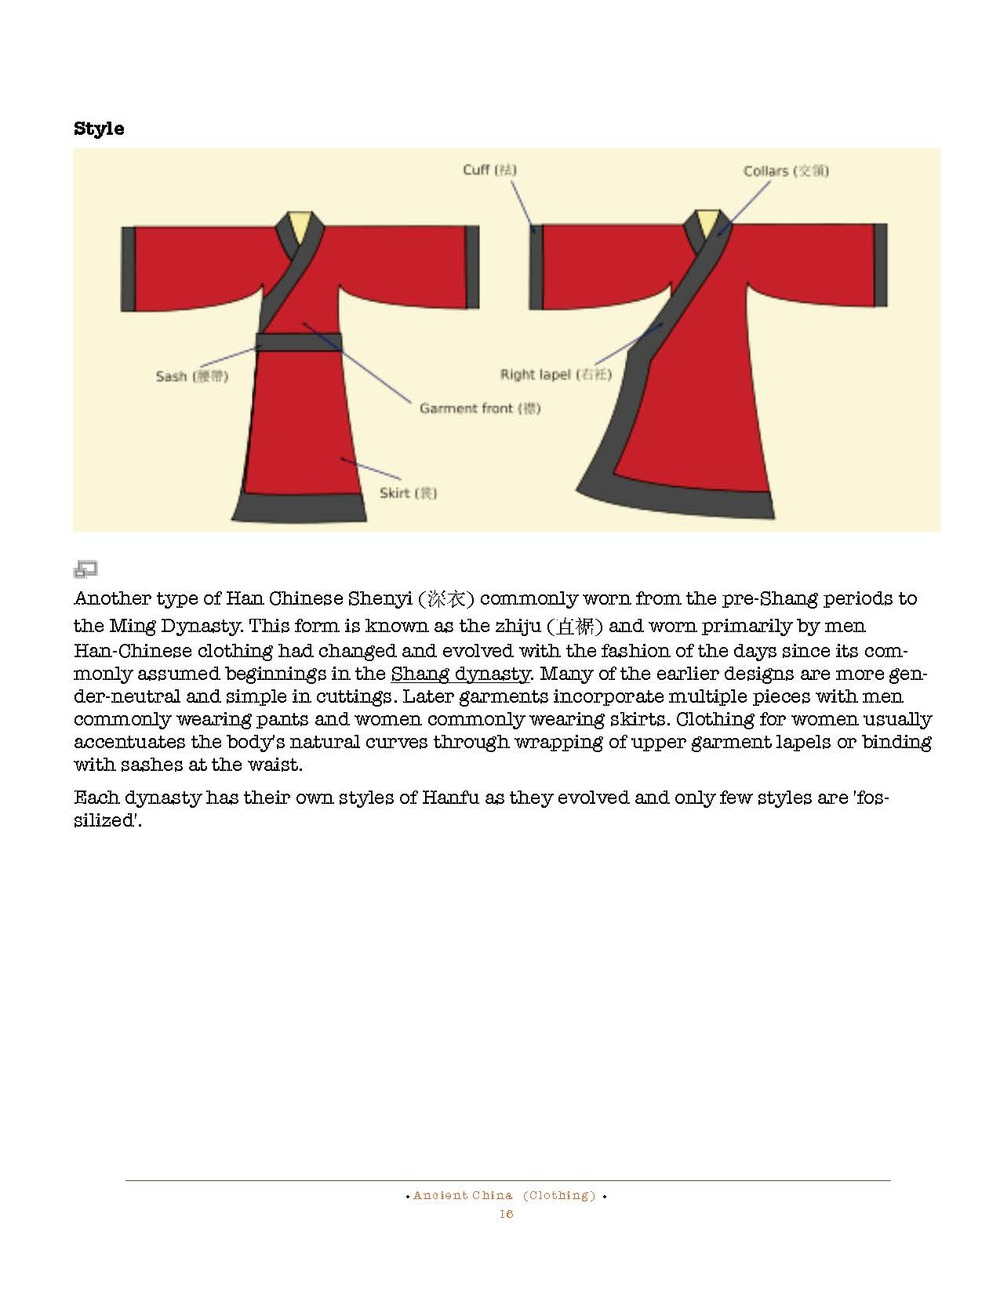 HOCE- Ancient China Notes (clothing)_Page_16.jpg